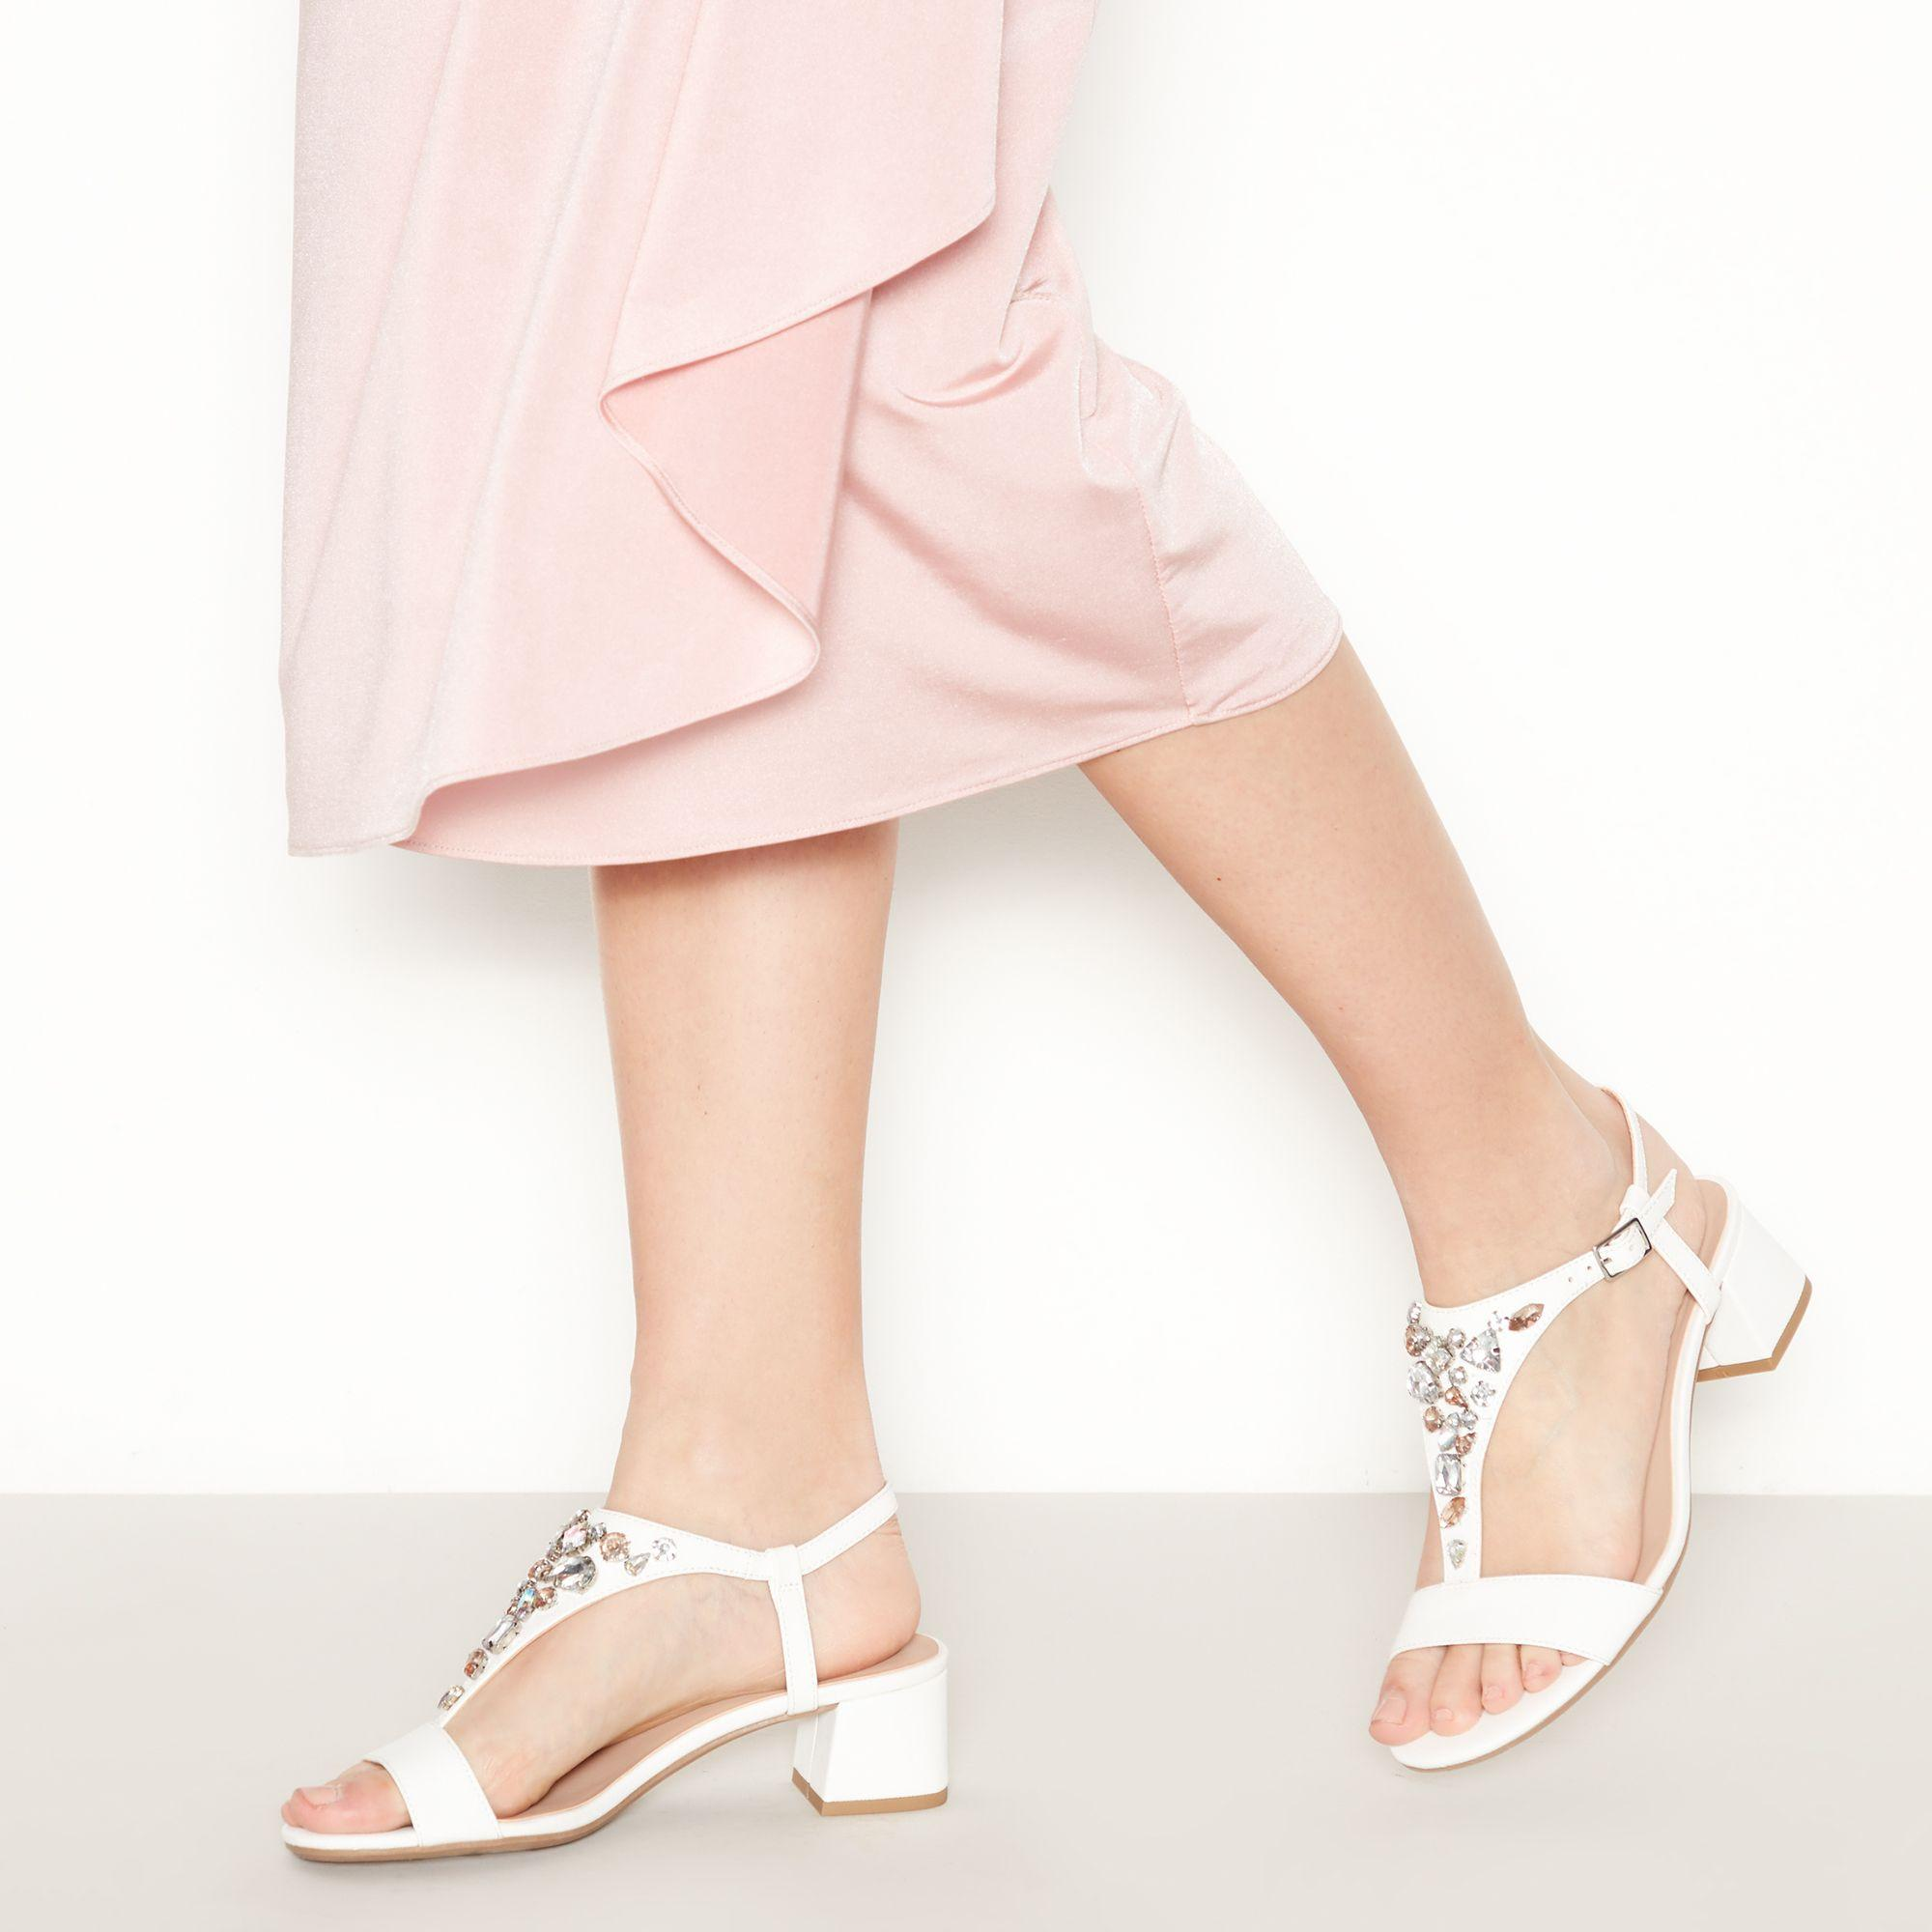 Début Embellished 'darcy' T-bar Sandals in White - Lyst